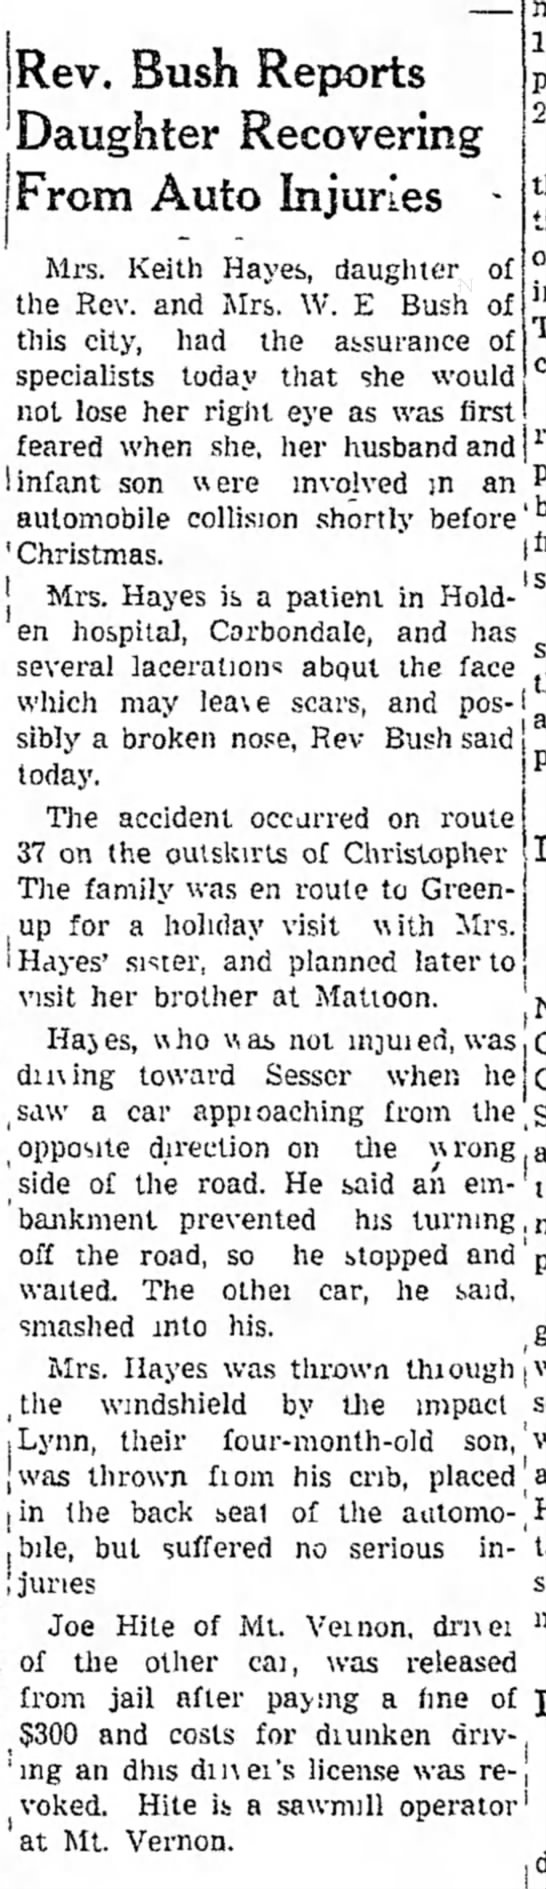 Ernestine and baby Bill in MVA. 1946 - Rev. Bush Reports Daughter Recovering From Auto...